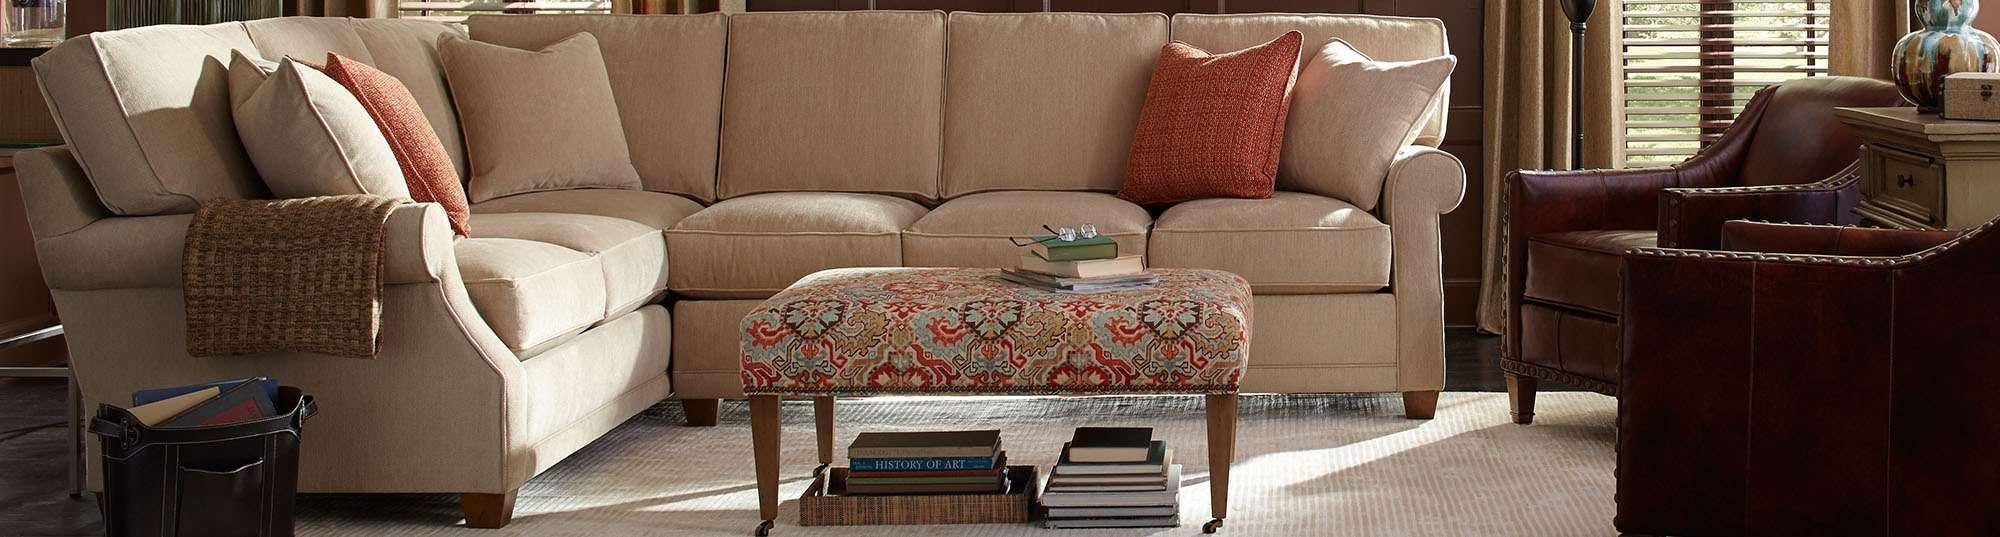 Sofas Center : Baker Sofa Rowe Furniture Robin Bruce Slipcover For Rowe Sectional Sofas (View 8 of 20)